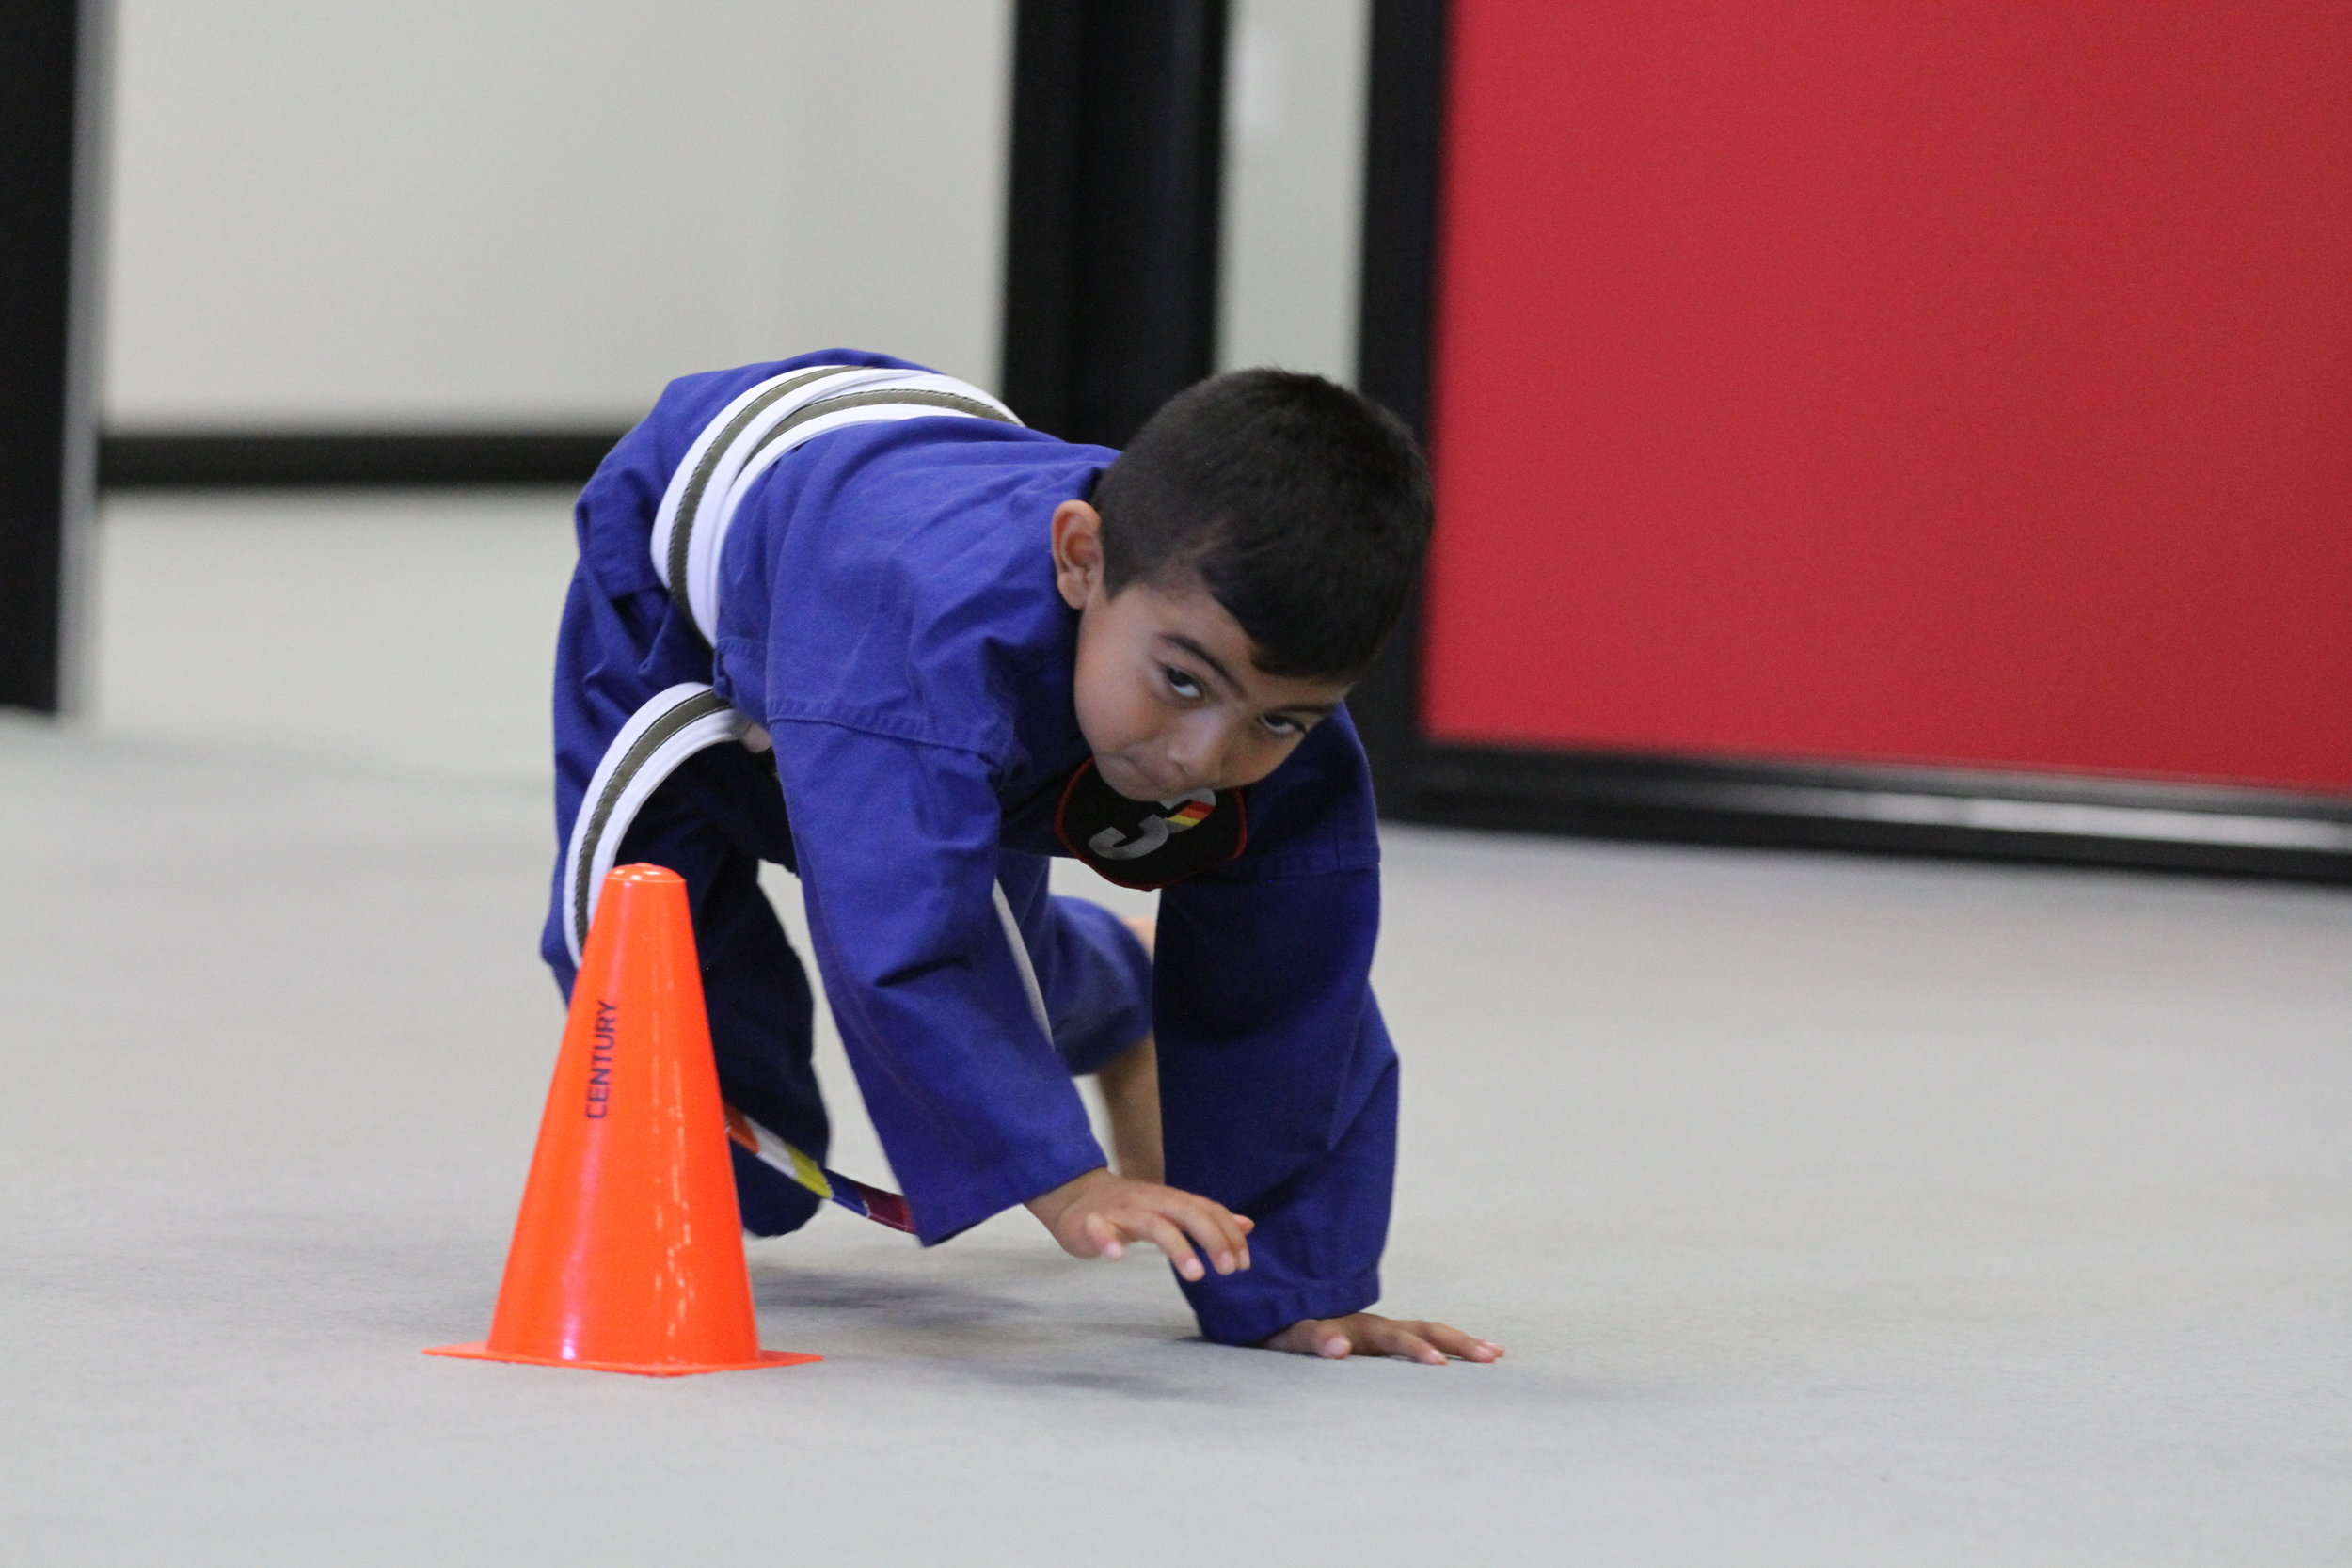 Level 3 MARTIAL ARTS PERFORMANCE - MOORPARK:   Download the class schedule by clicking the button below.